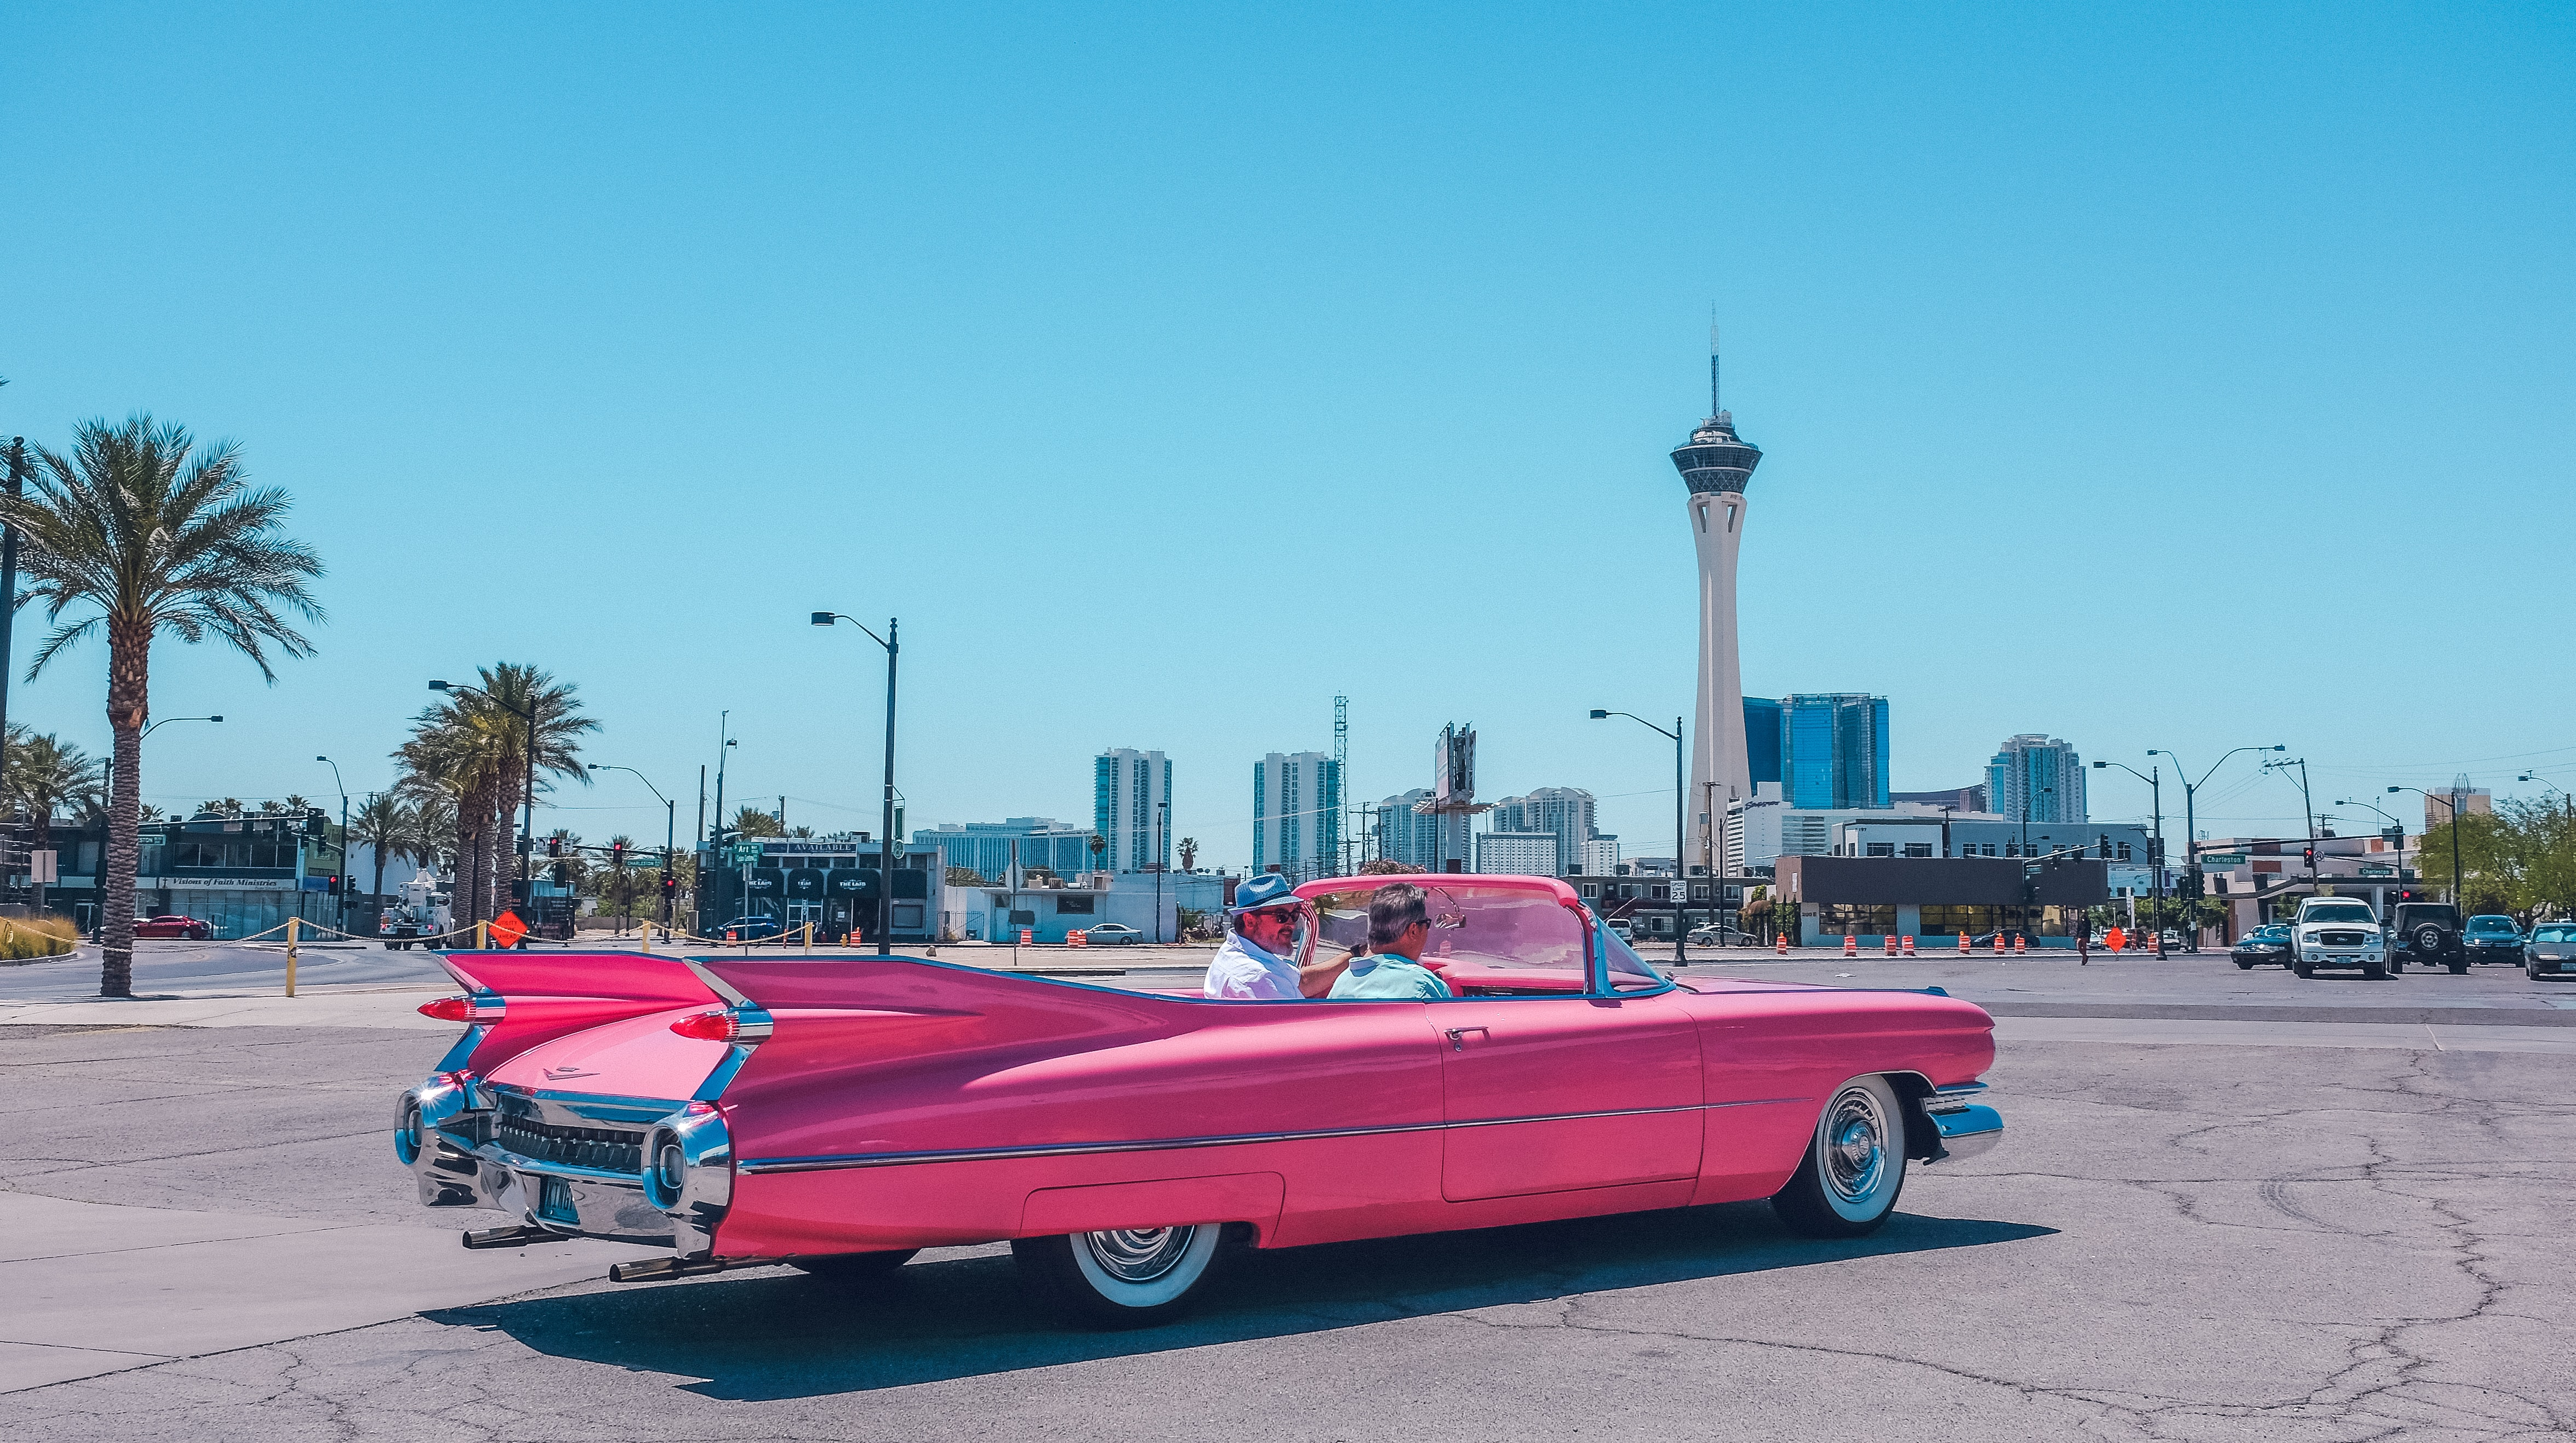 Pink vintage Cadillac car on pavement on clear day in Arts District with tower on skyline